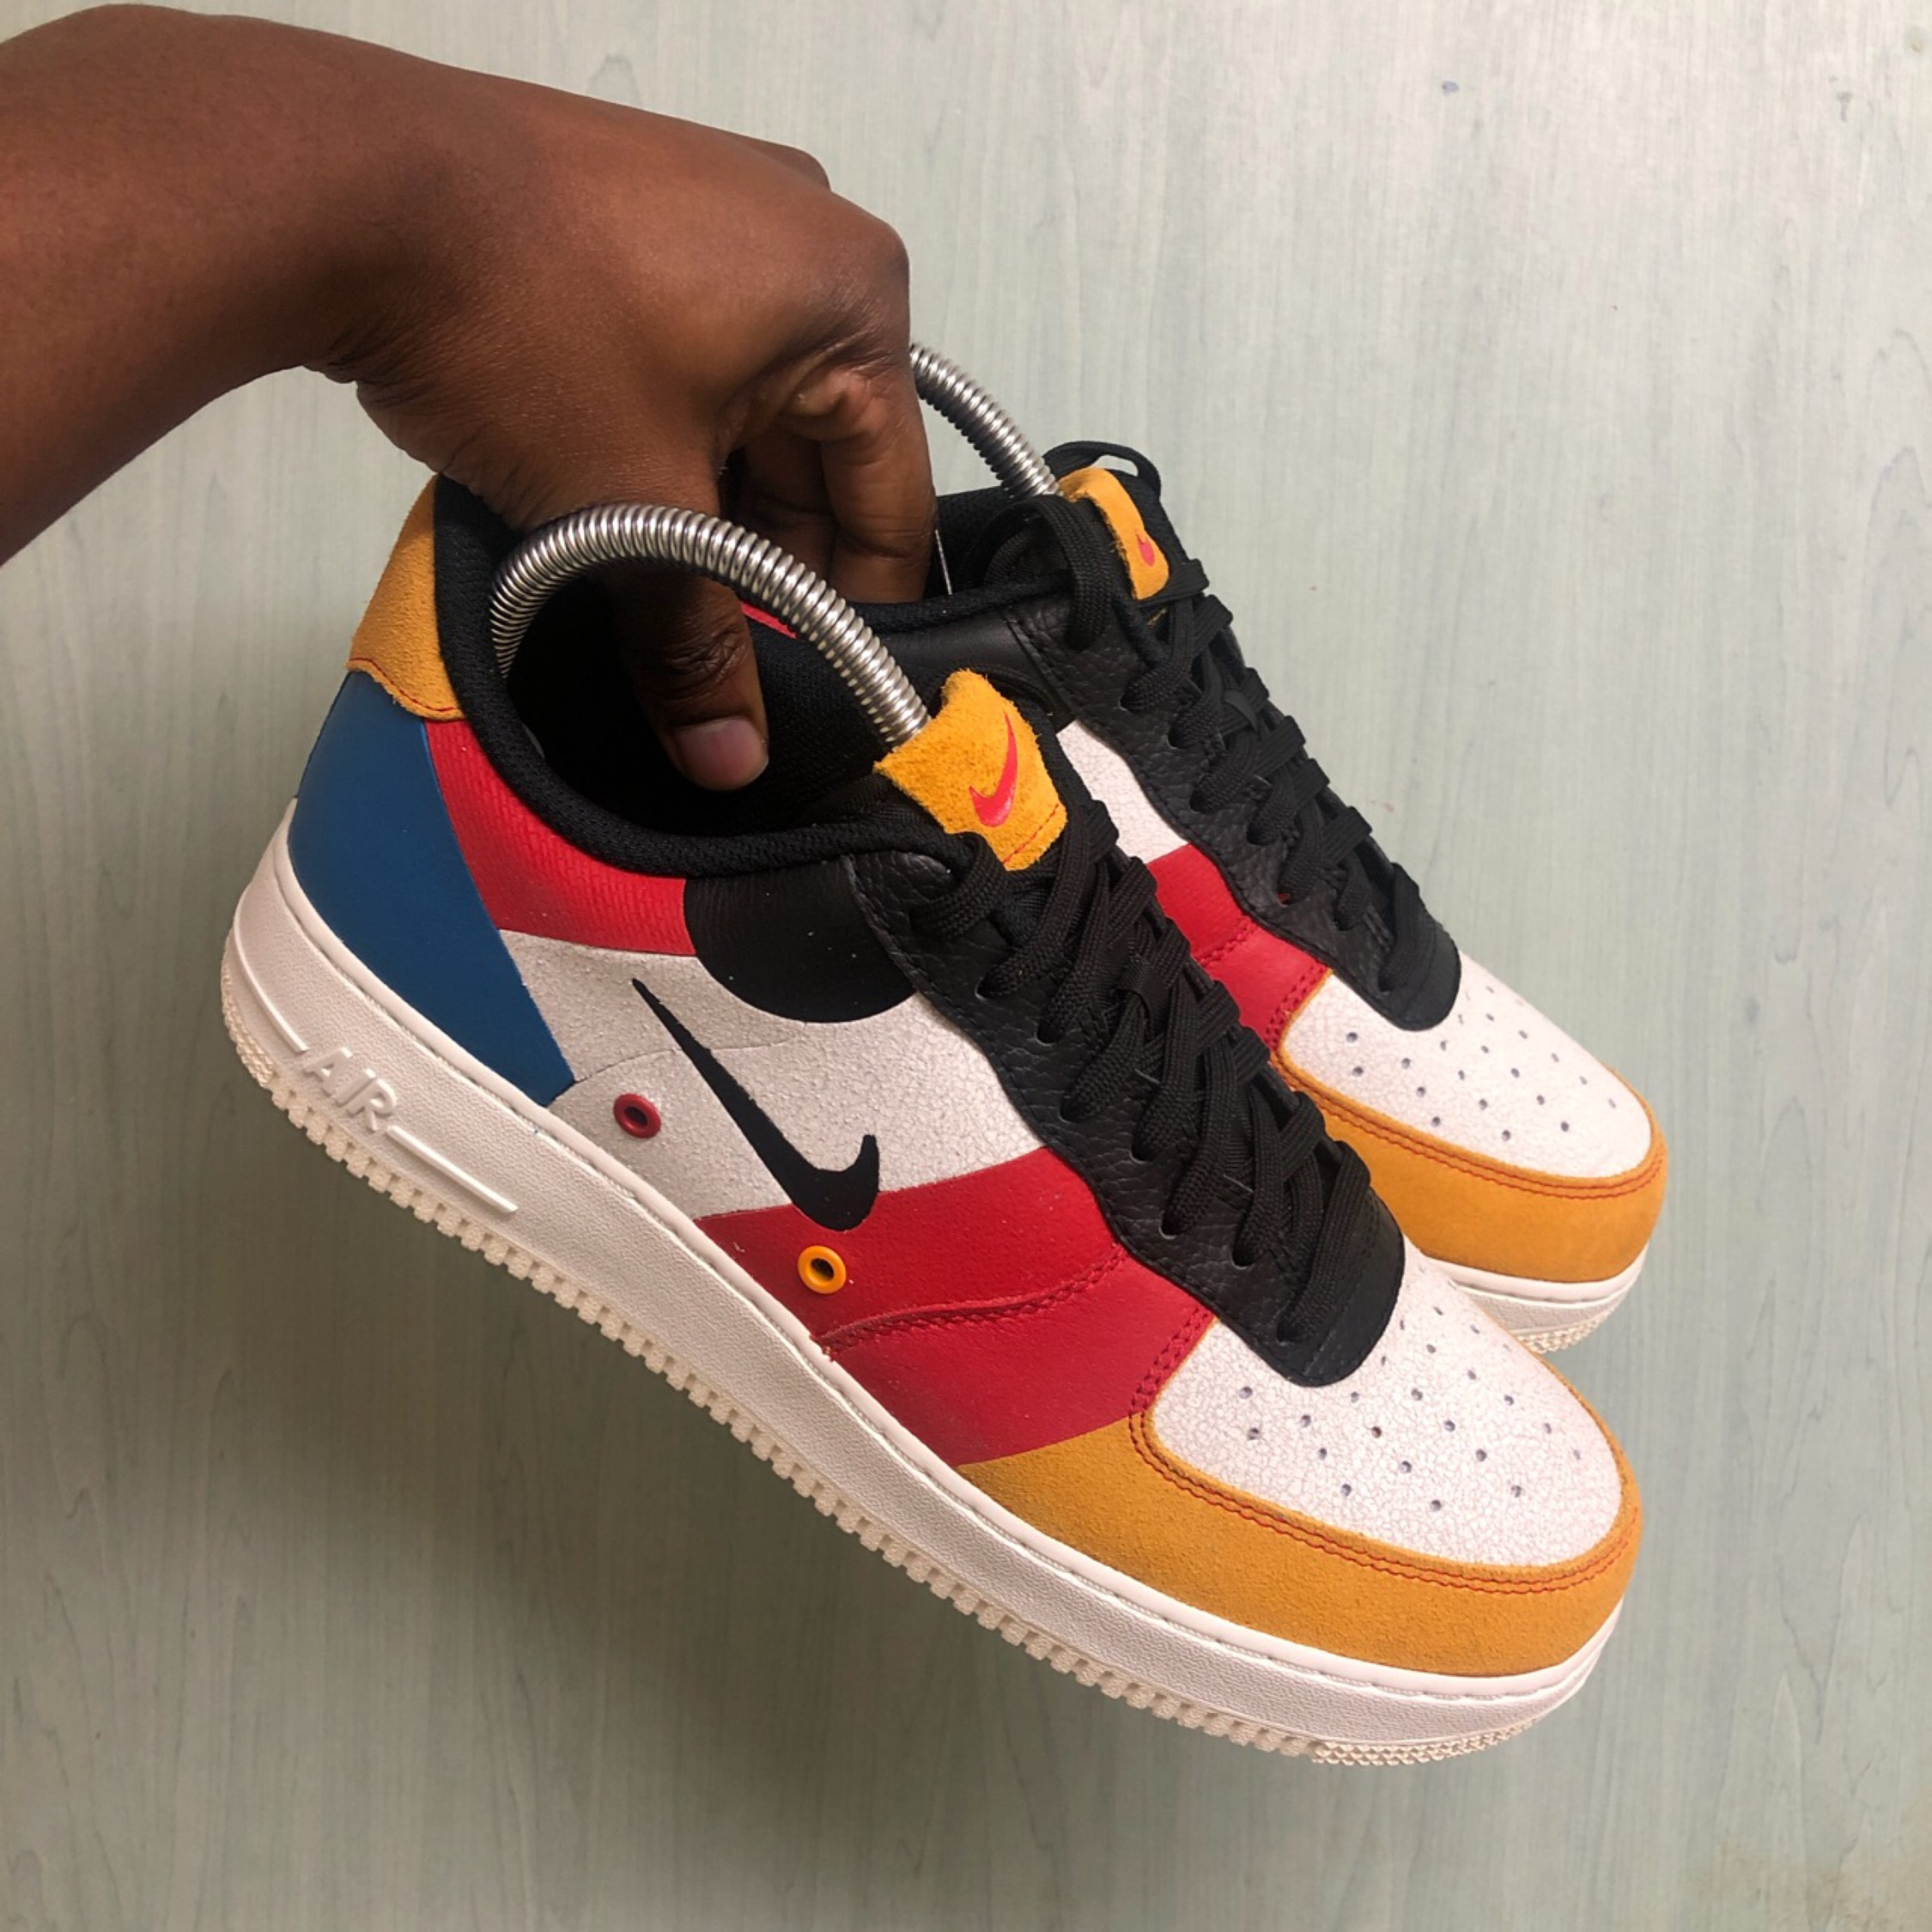 Air Force 1 '07 Premium Patchwork